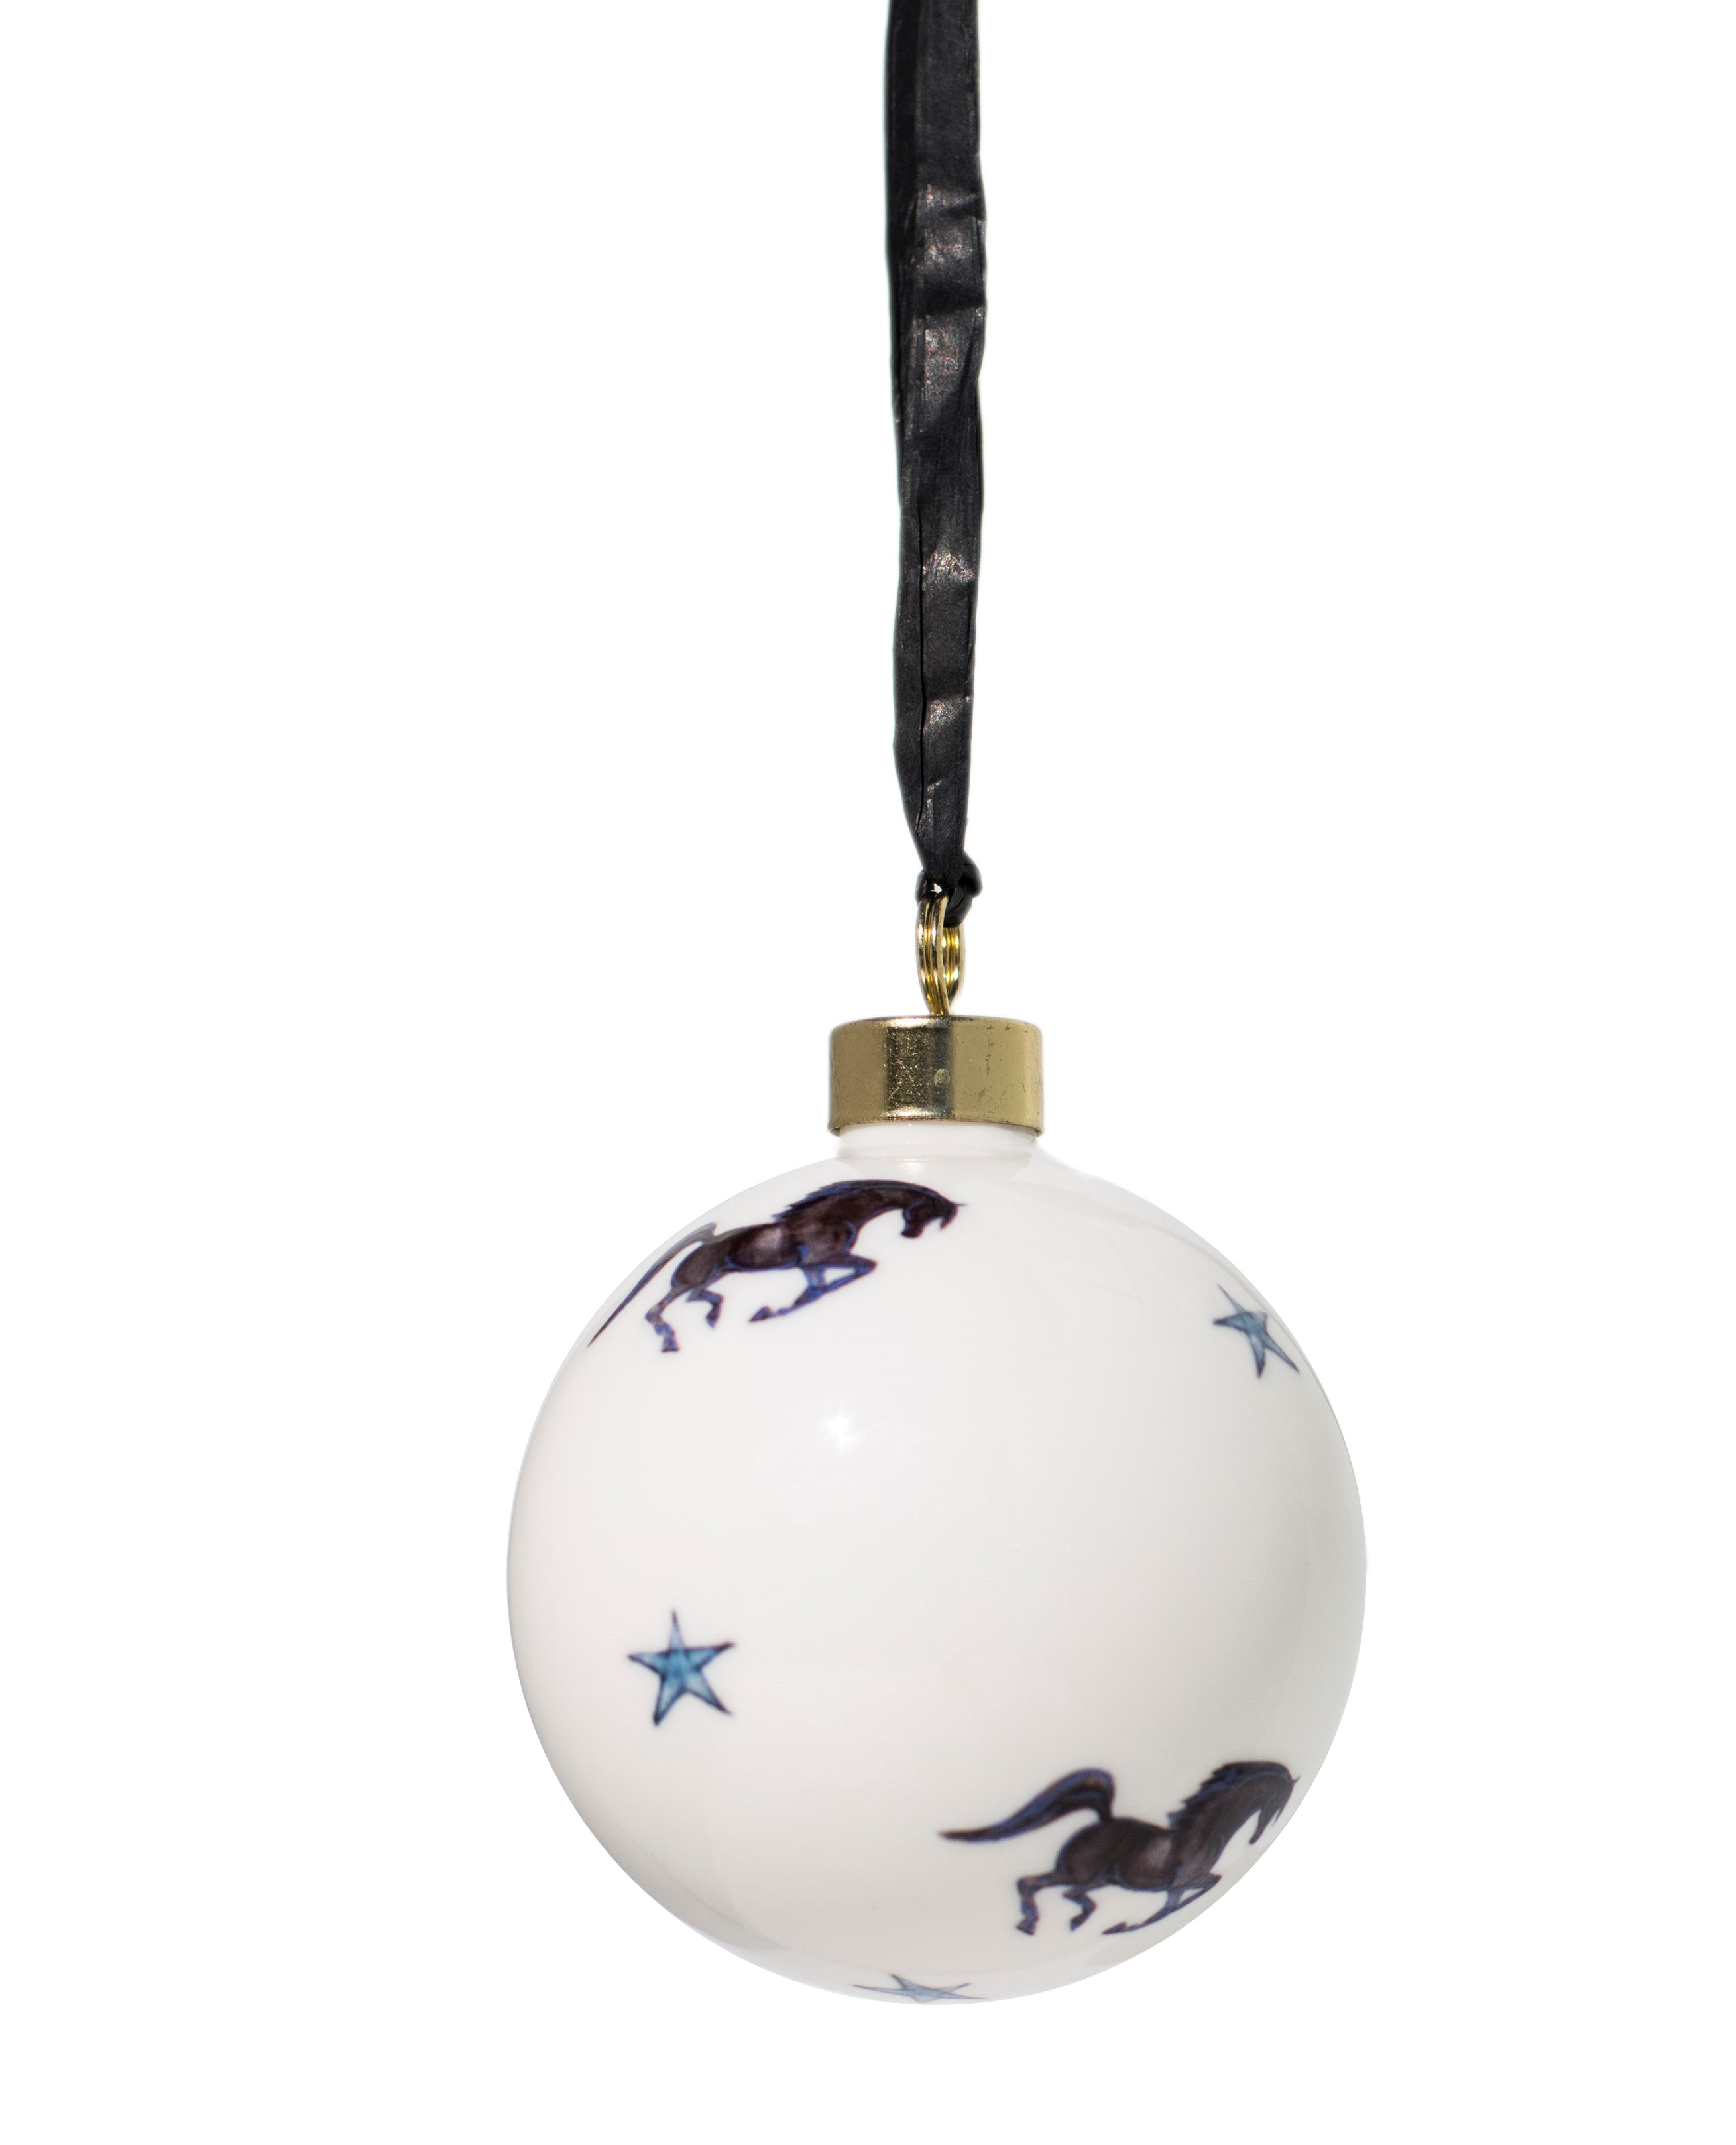 Hand decorated Black Stallion Bauble